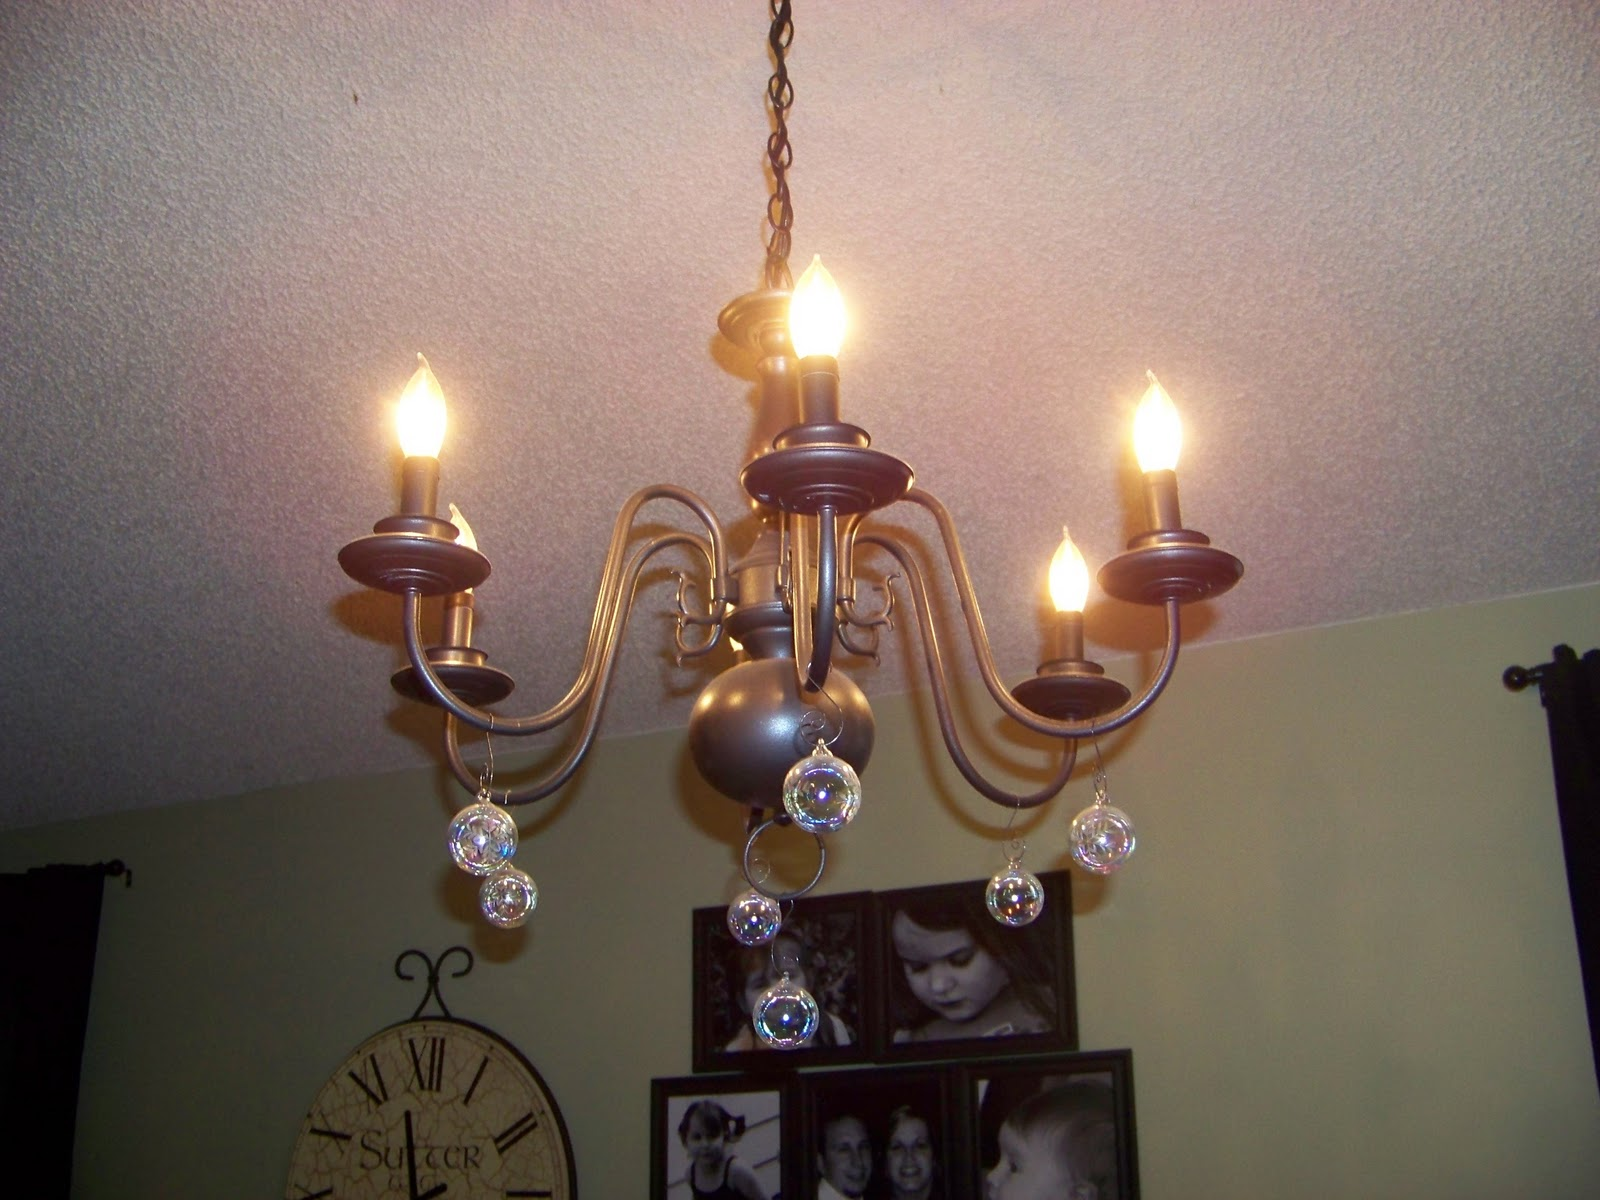 The Sunset Lane DIY Pottery Barn Bellora Chandelier Knock f